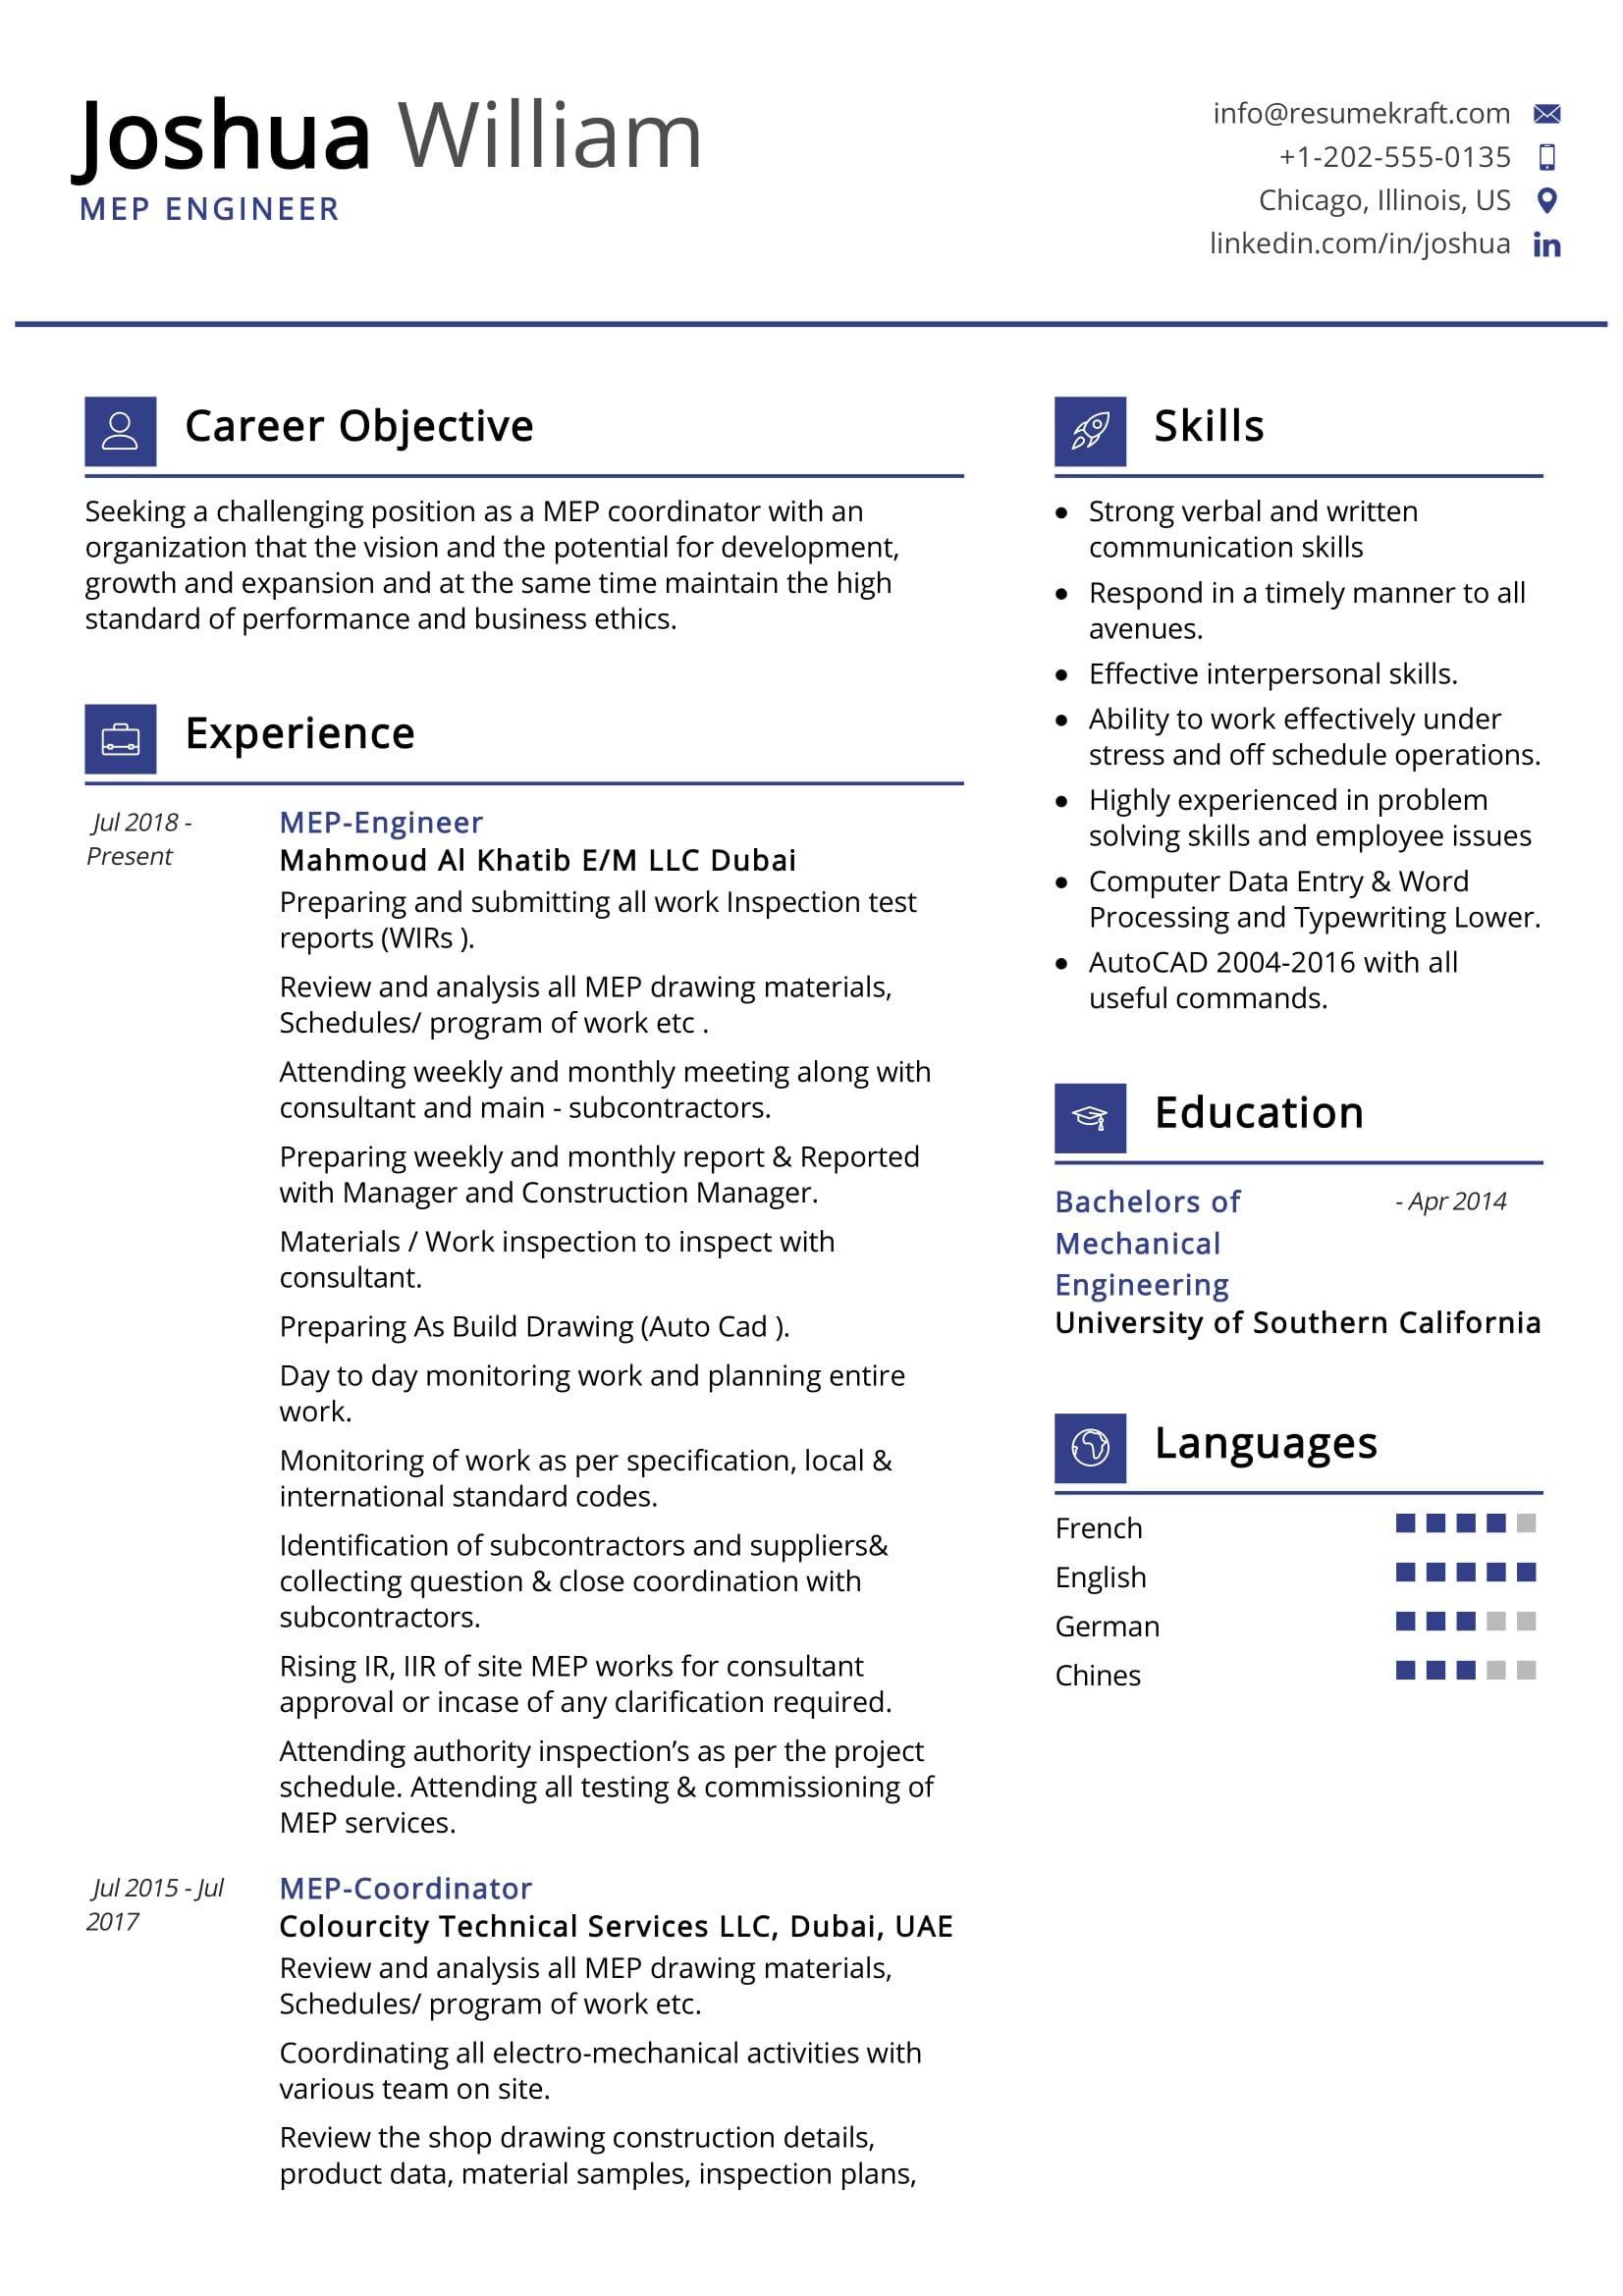 mep engineer resume sample resumekraft computer vision software skills post on monster Resume Computer Vision Engineer Resume